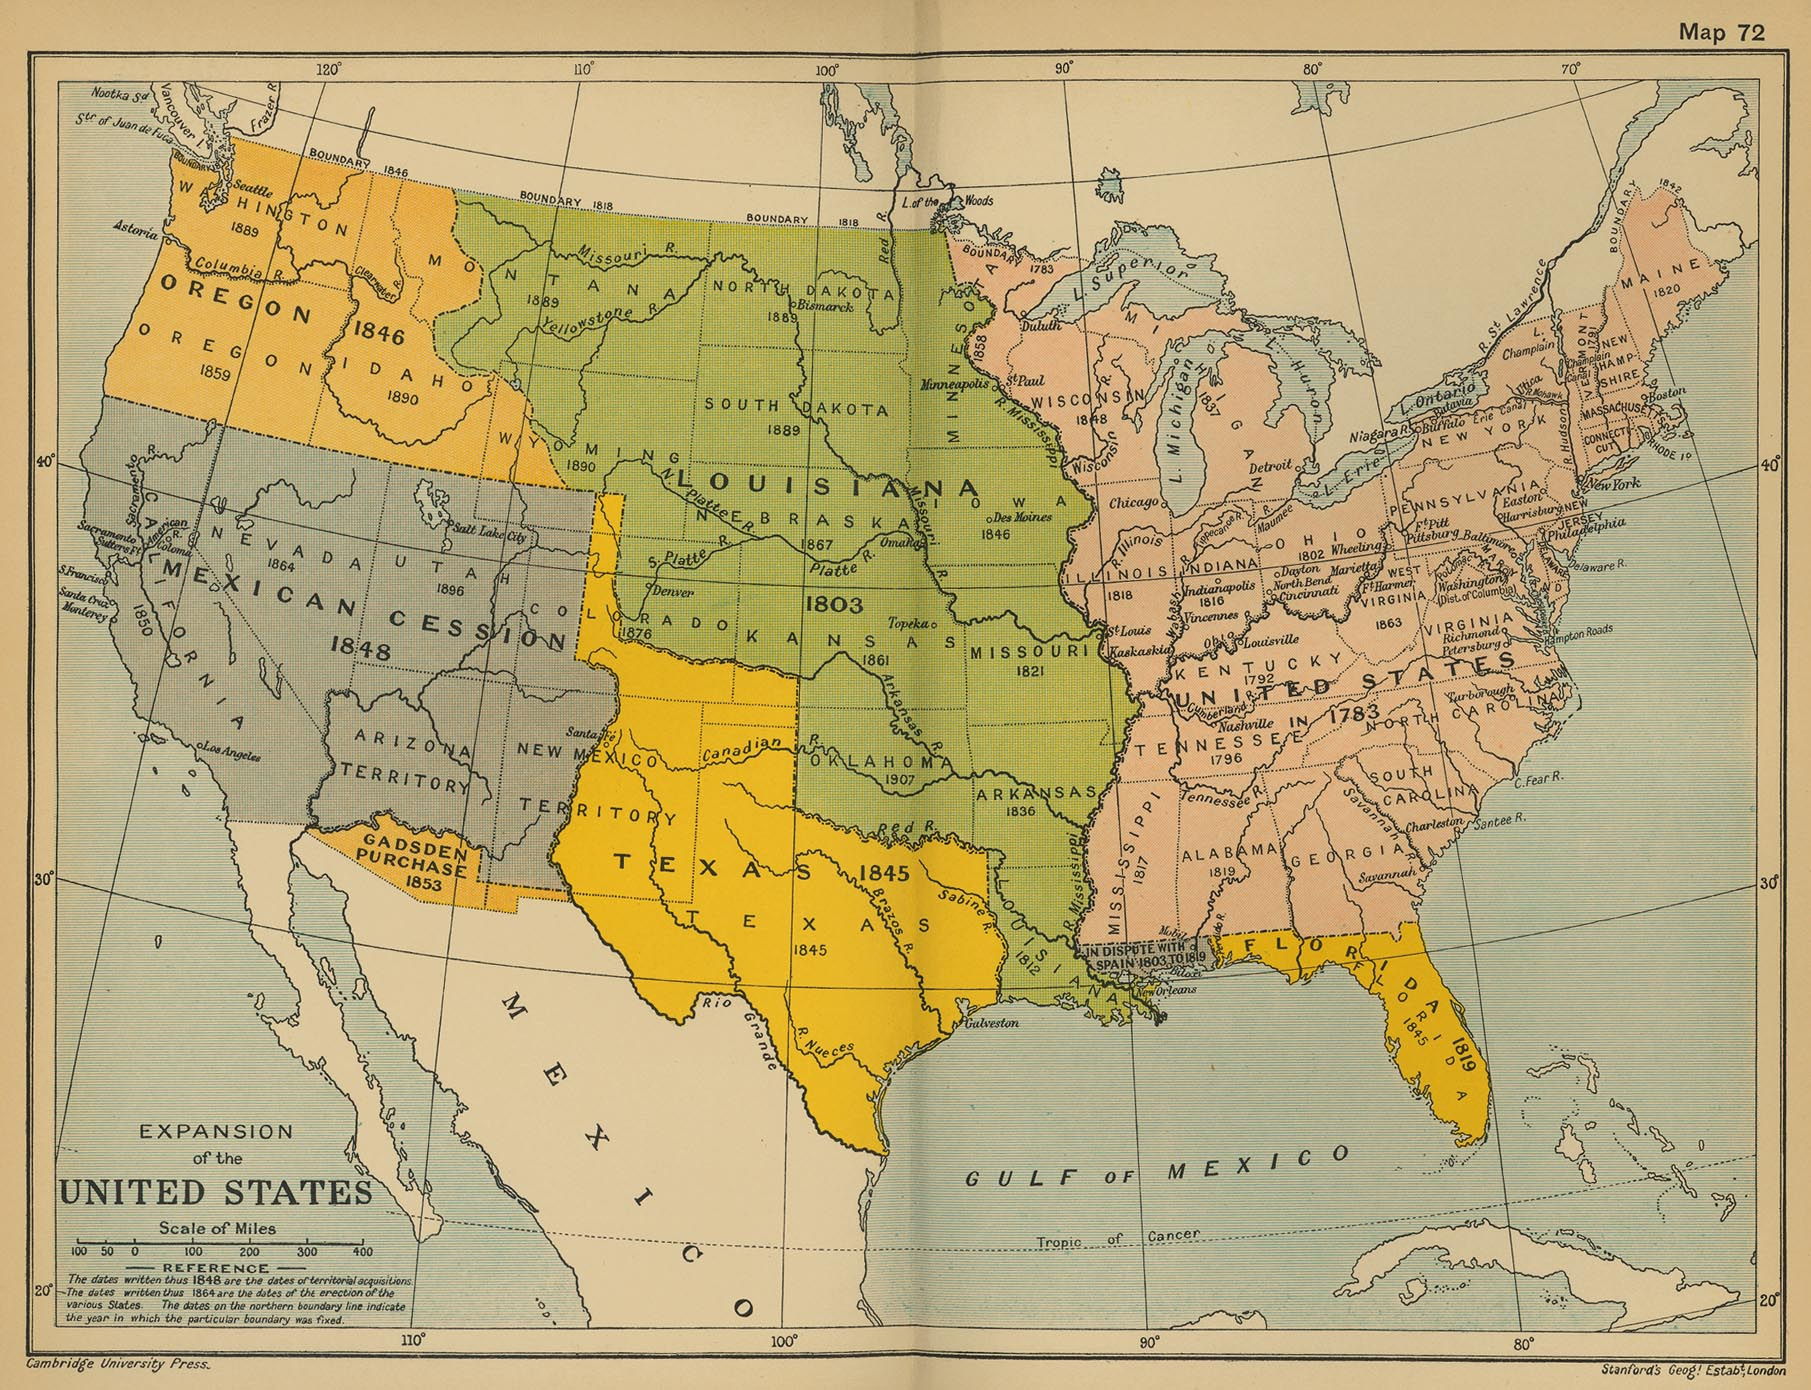 of the Expansion of the United States 17831907